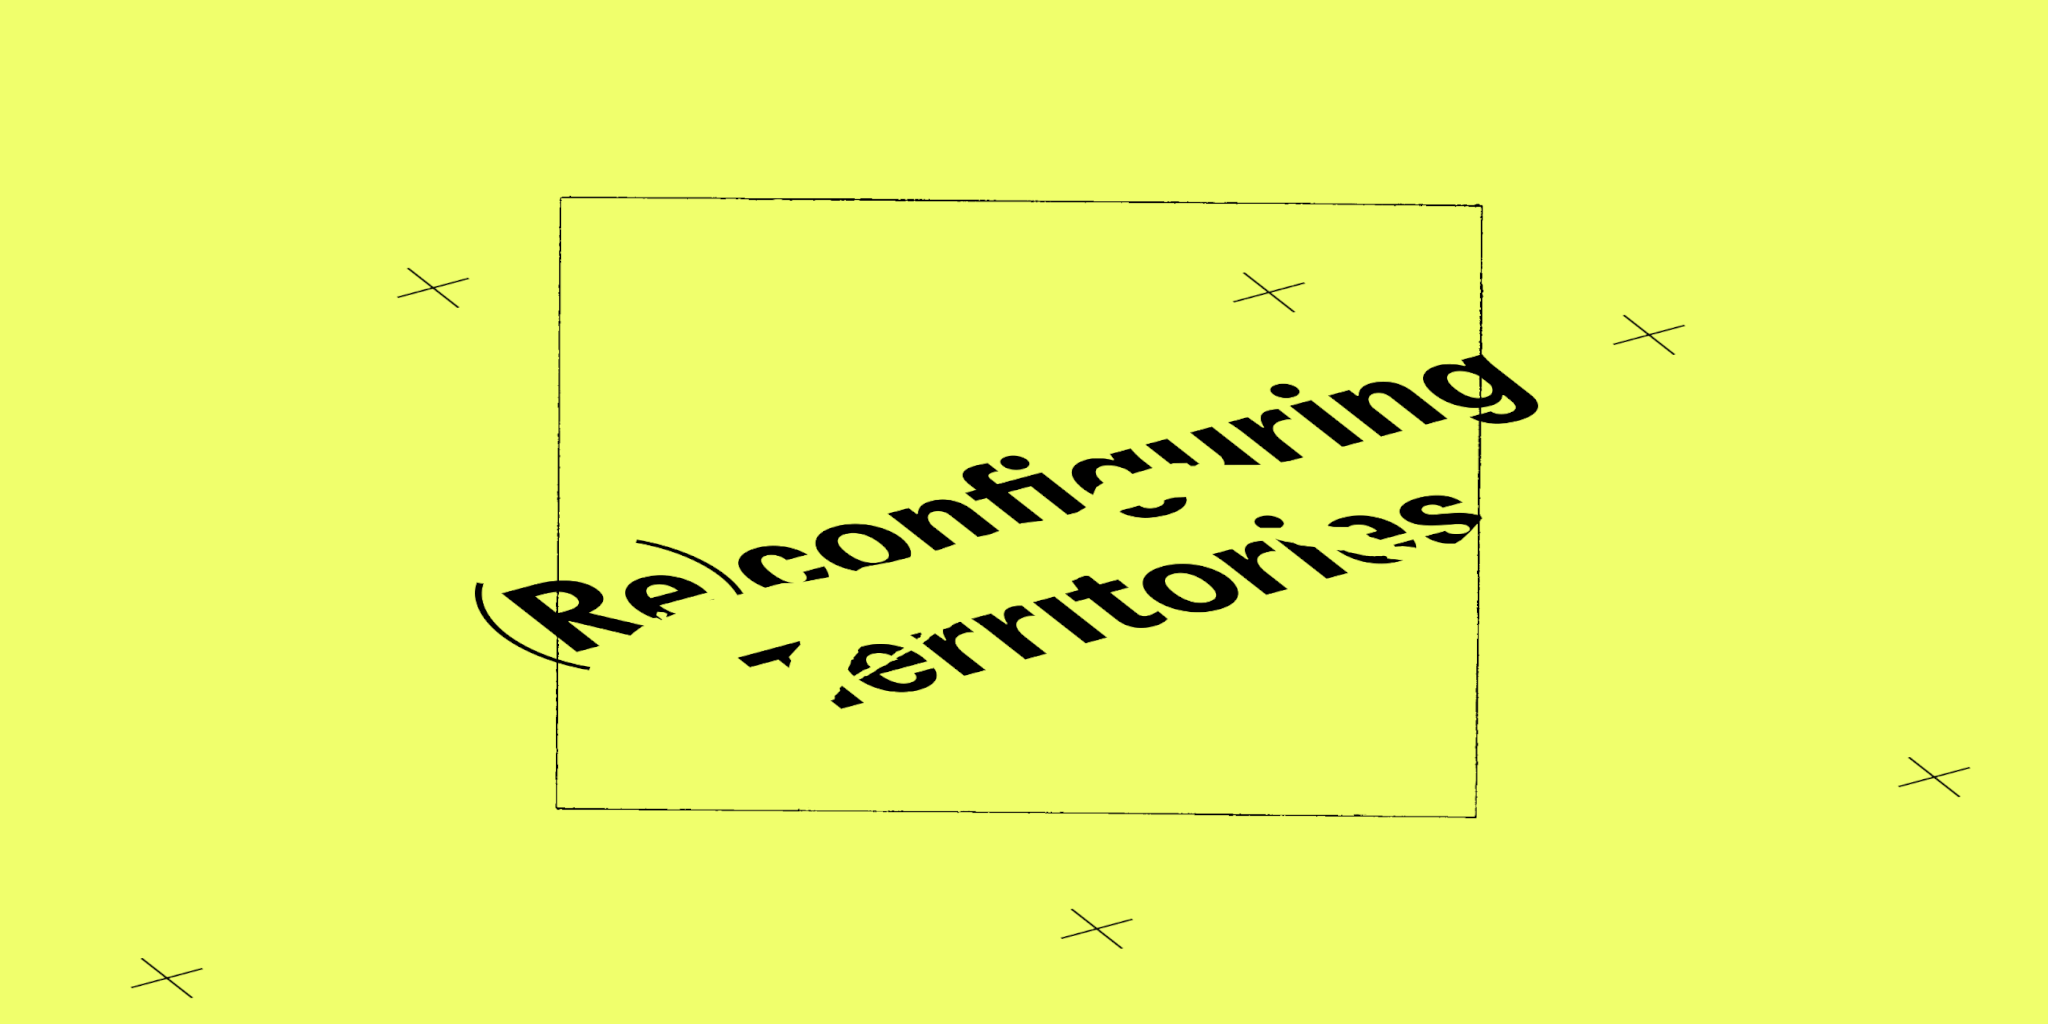 Reconfiguring Territories text and a rectangular border on a green yellowish background